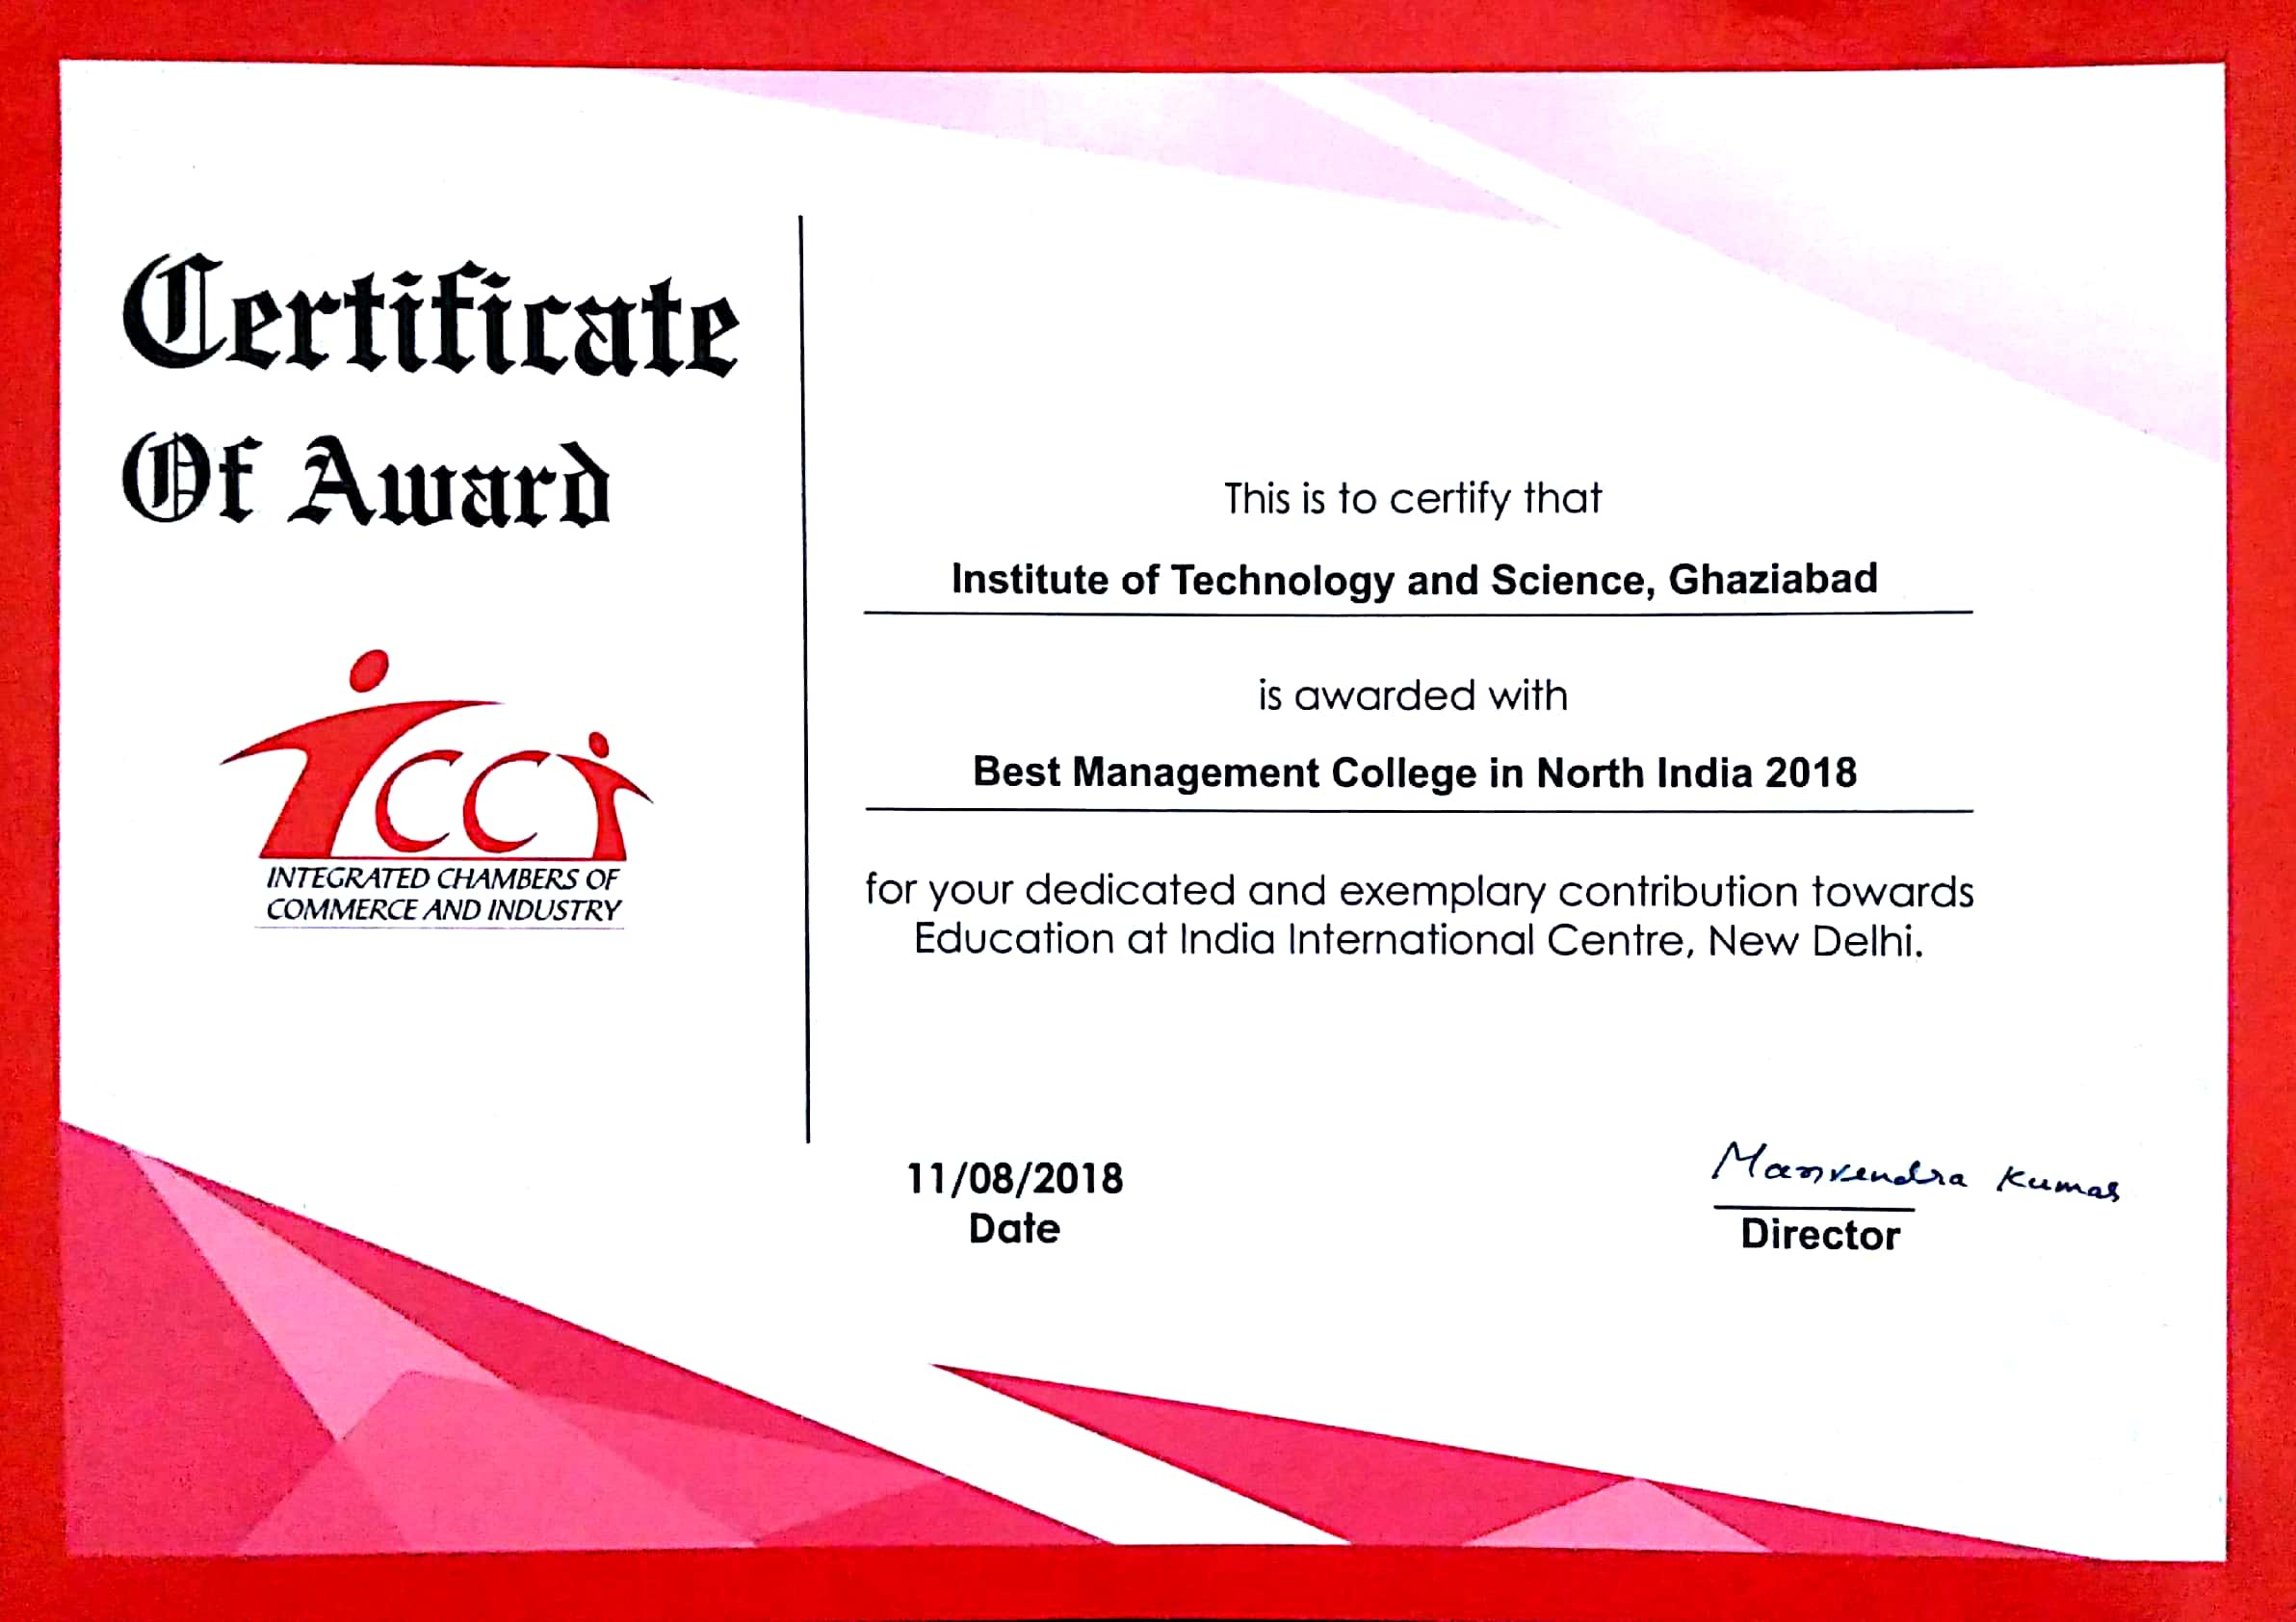 Best Management College in North India 2018 by ICCI